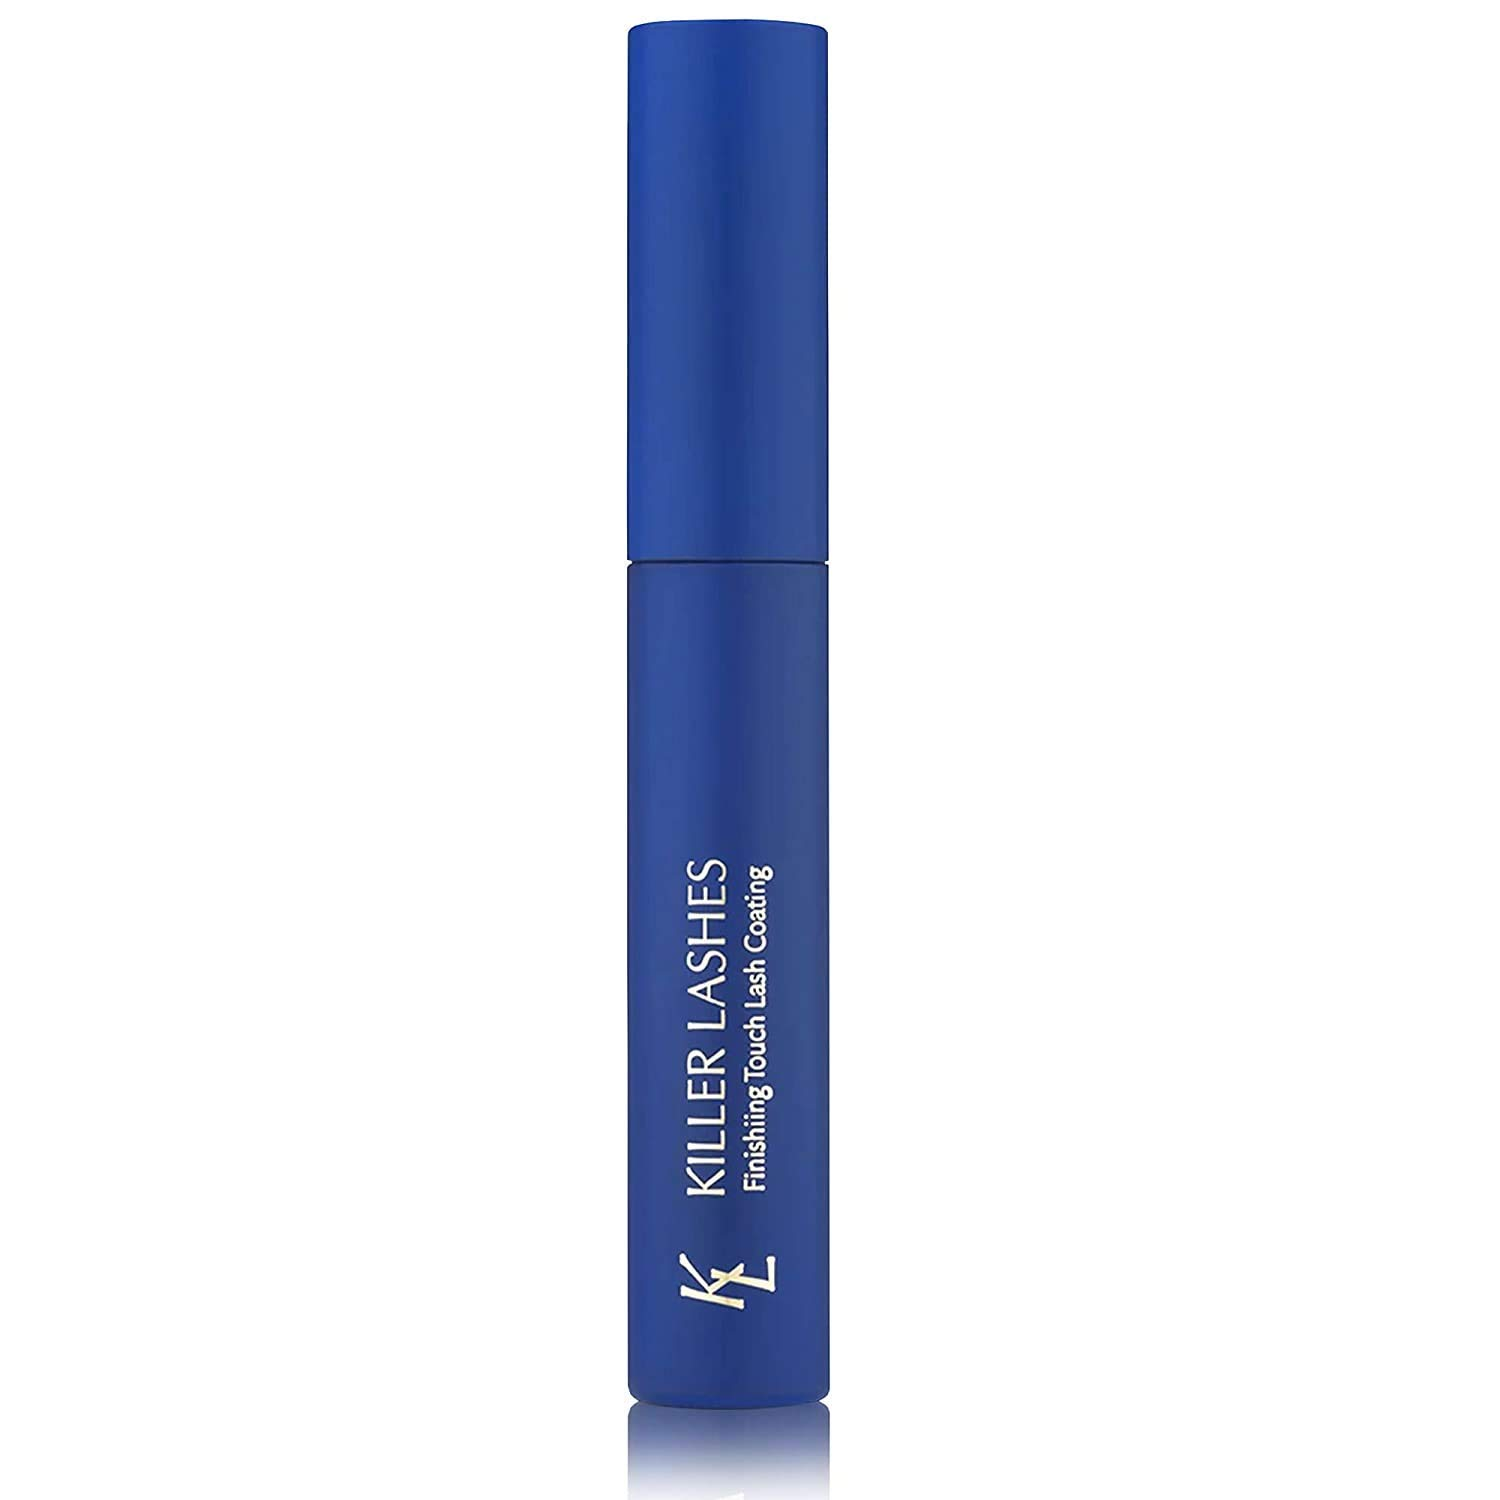 Killer Lashes Clear Mascara for Nourishing Eyelashes and Preventing Damage and Mascara Smudges